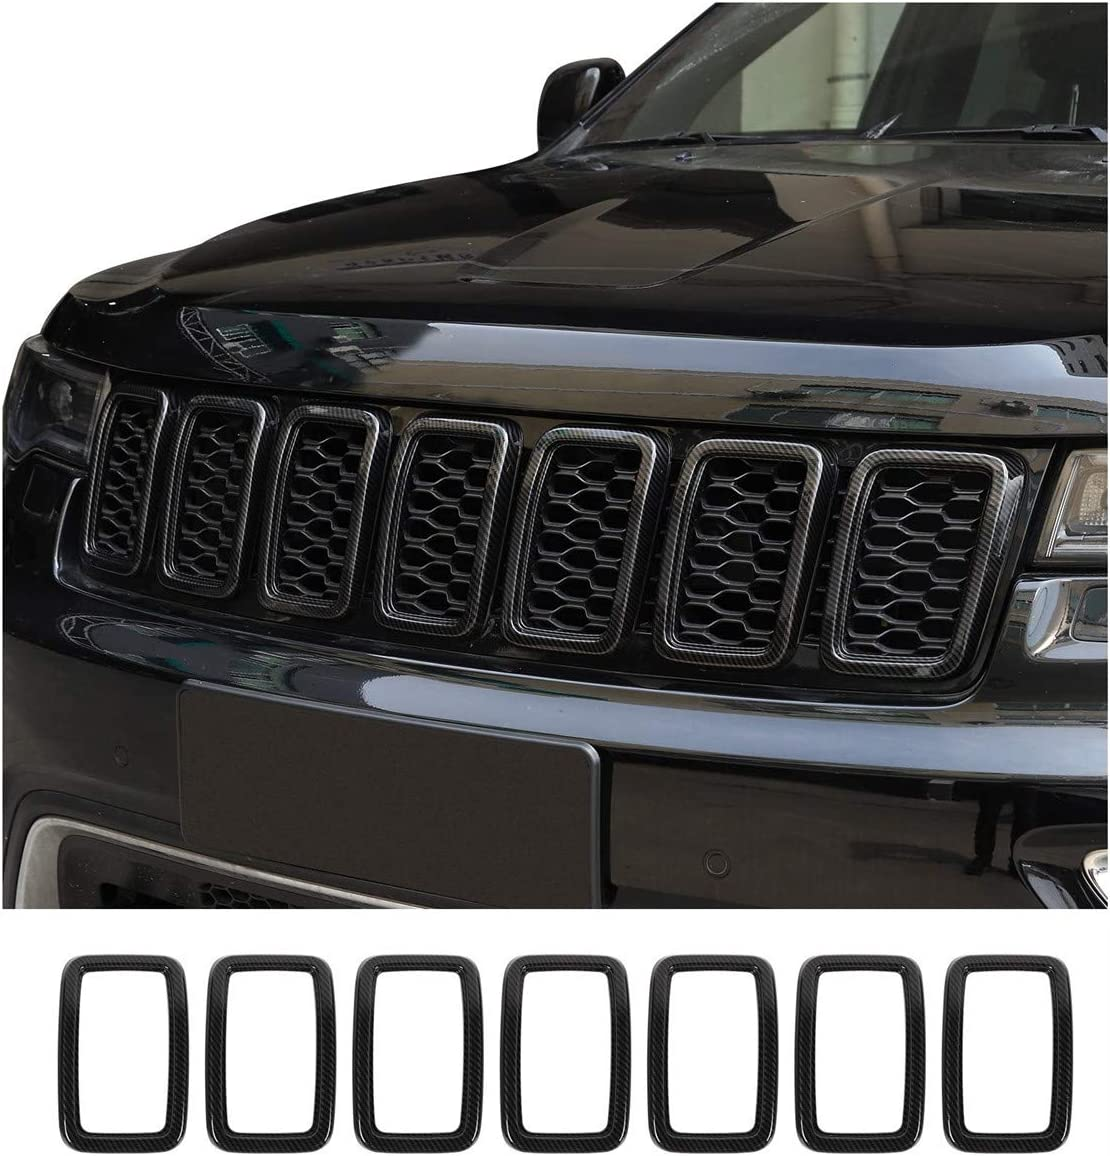 Front Grille Rings Grill Inserts Cover For 2017-2019 Jeep Grand Cherokee Black Grill Frame Trim Kit 7pcs Black